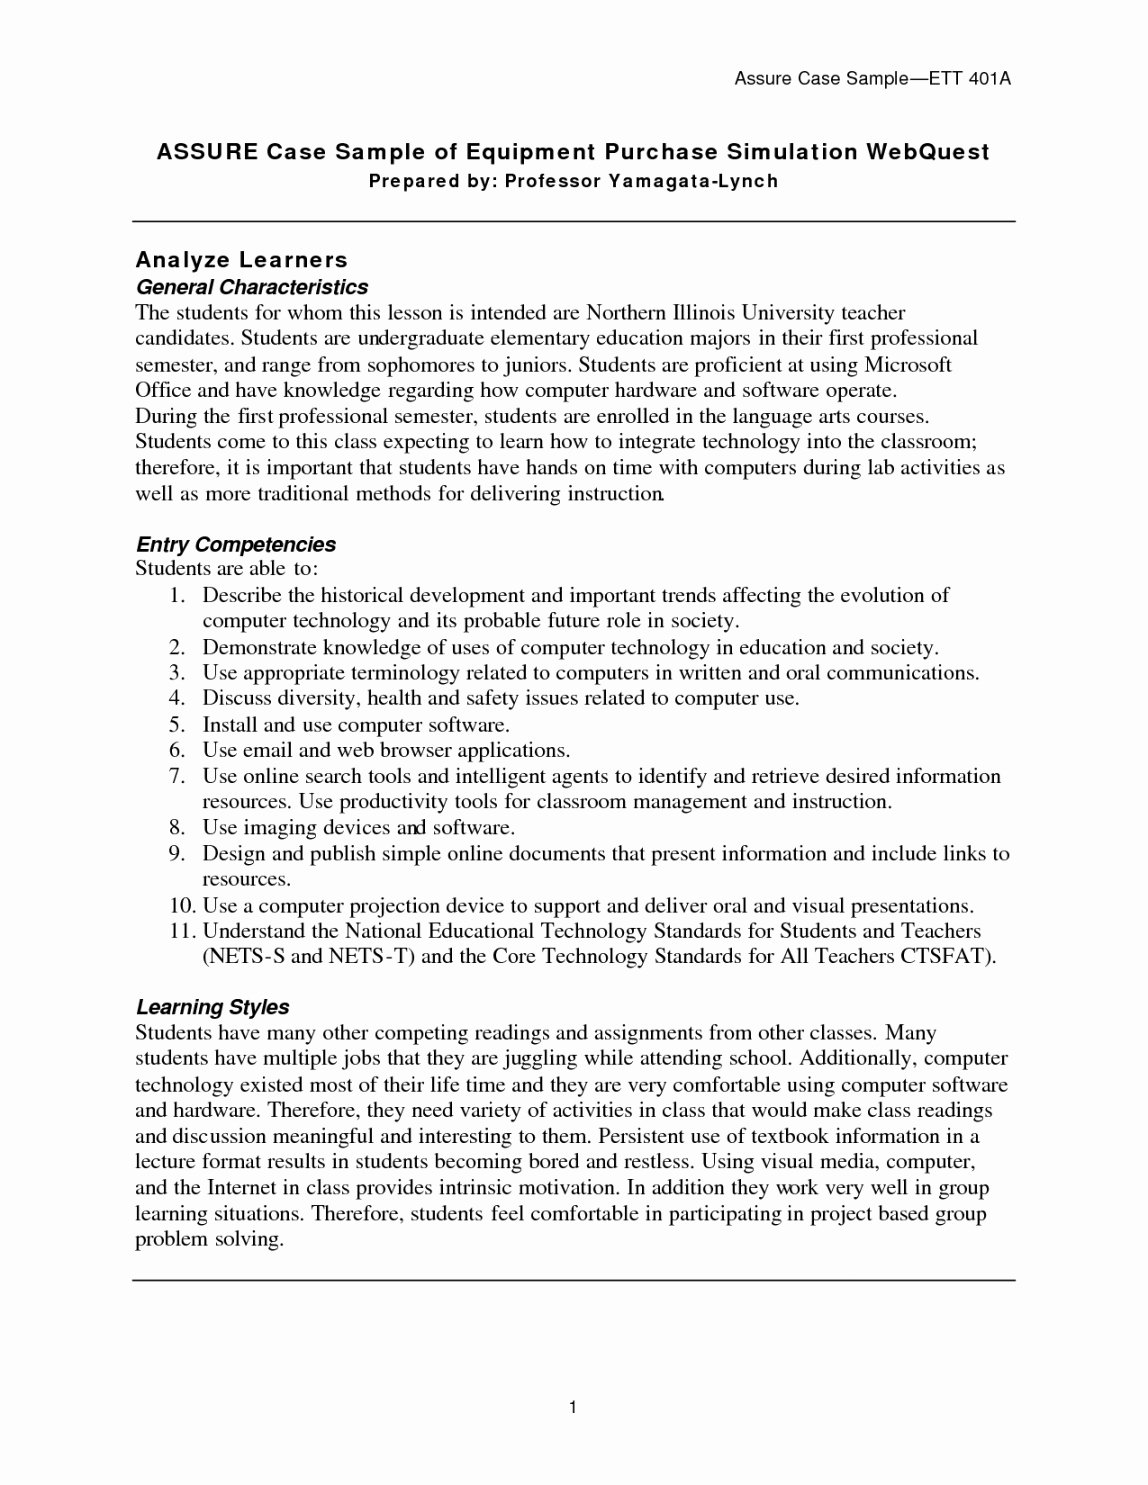 Equipment Purchase Proposal Template Inspirational Equipment Purchase Proposal Template